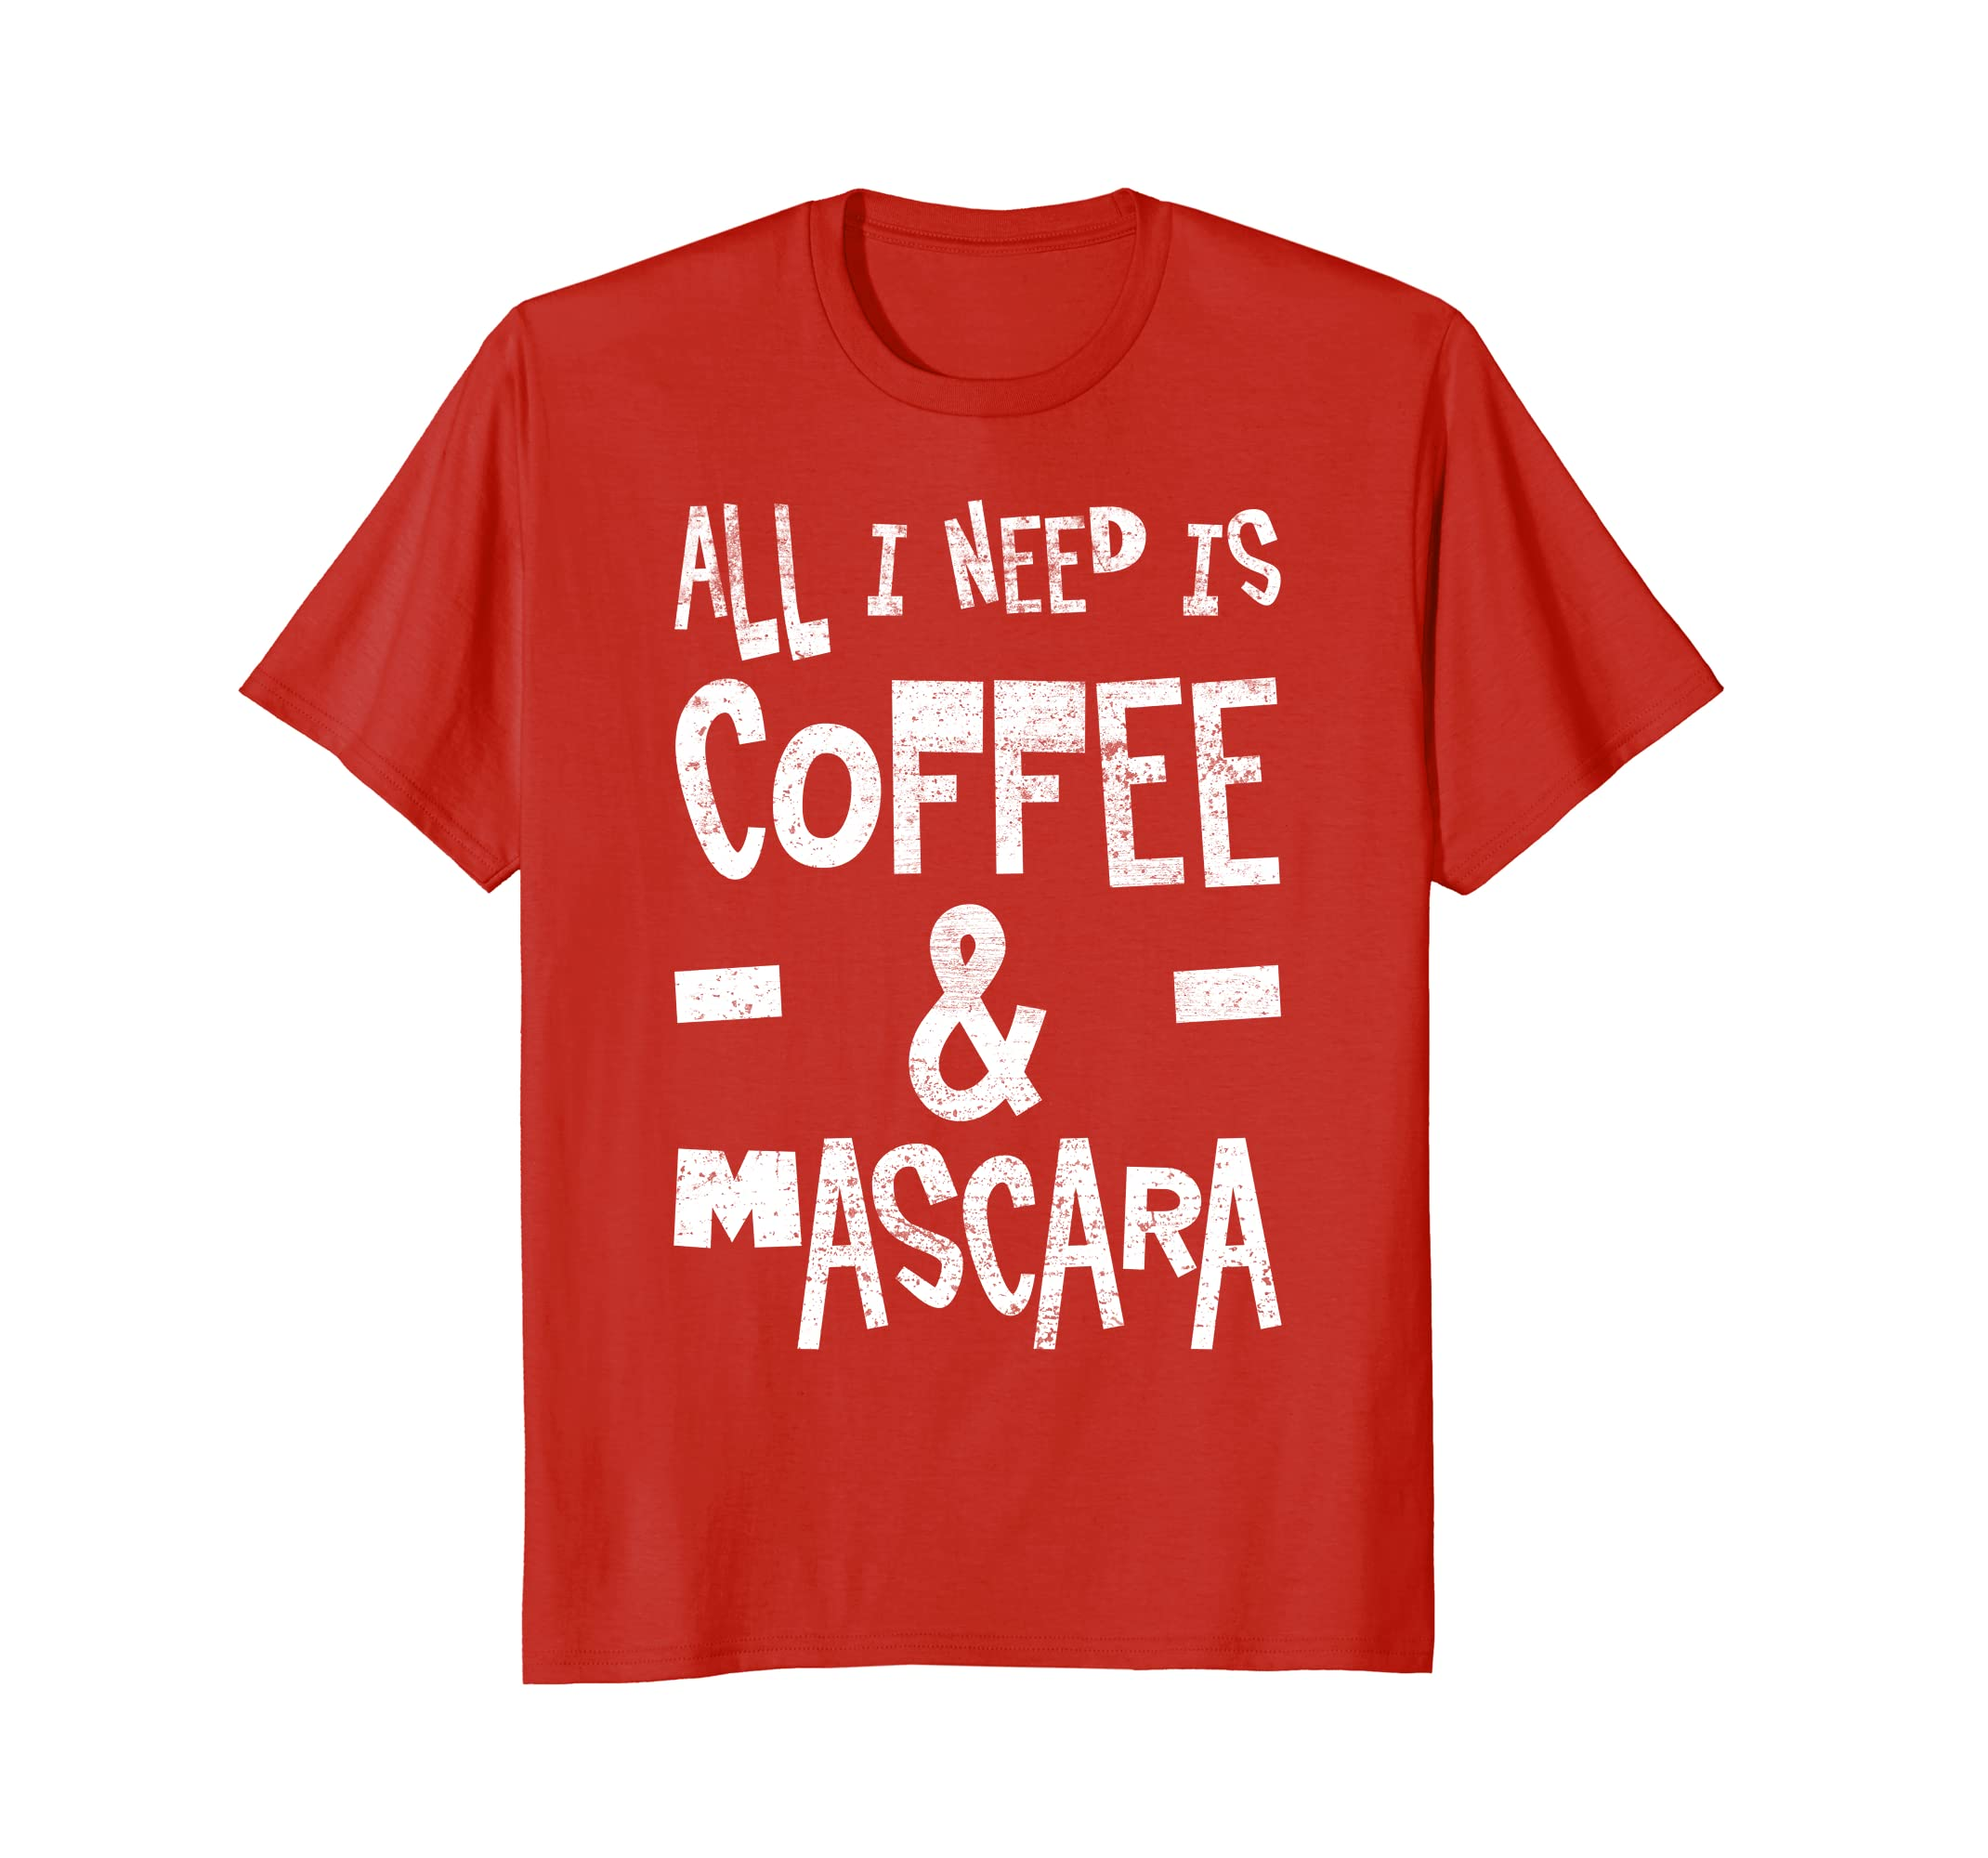 Amazon.com: All I Need is Coffee and Mascara T-Shirt Fun Cute Womens Tee: Clothing